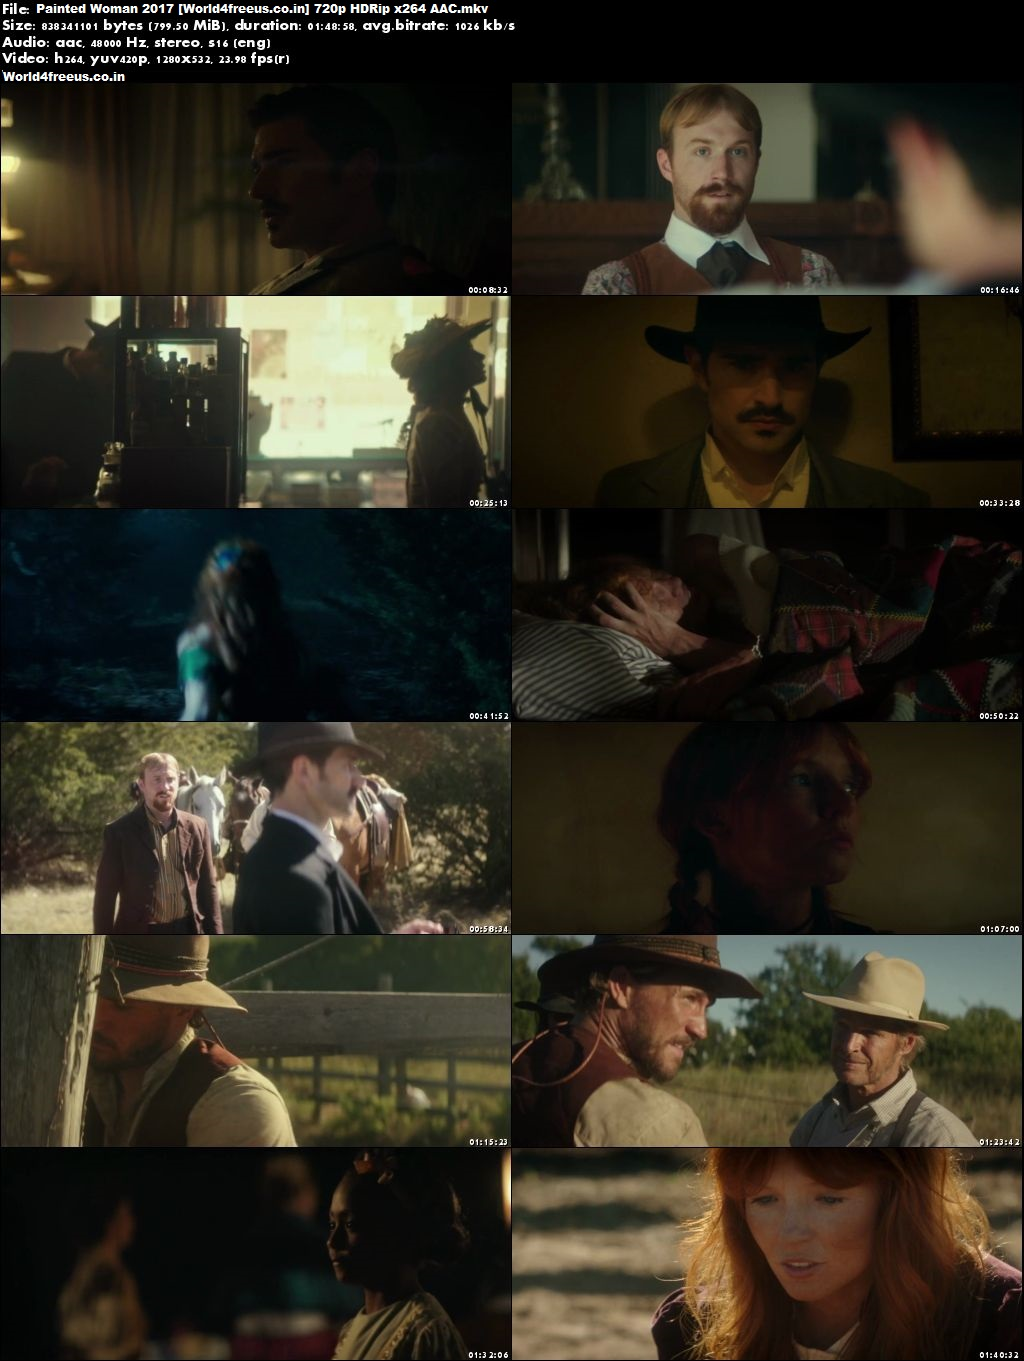 Painted Woman 2017 Full English Movie Download HDRip 720p